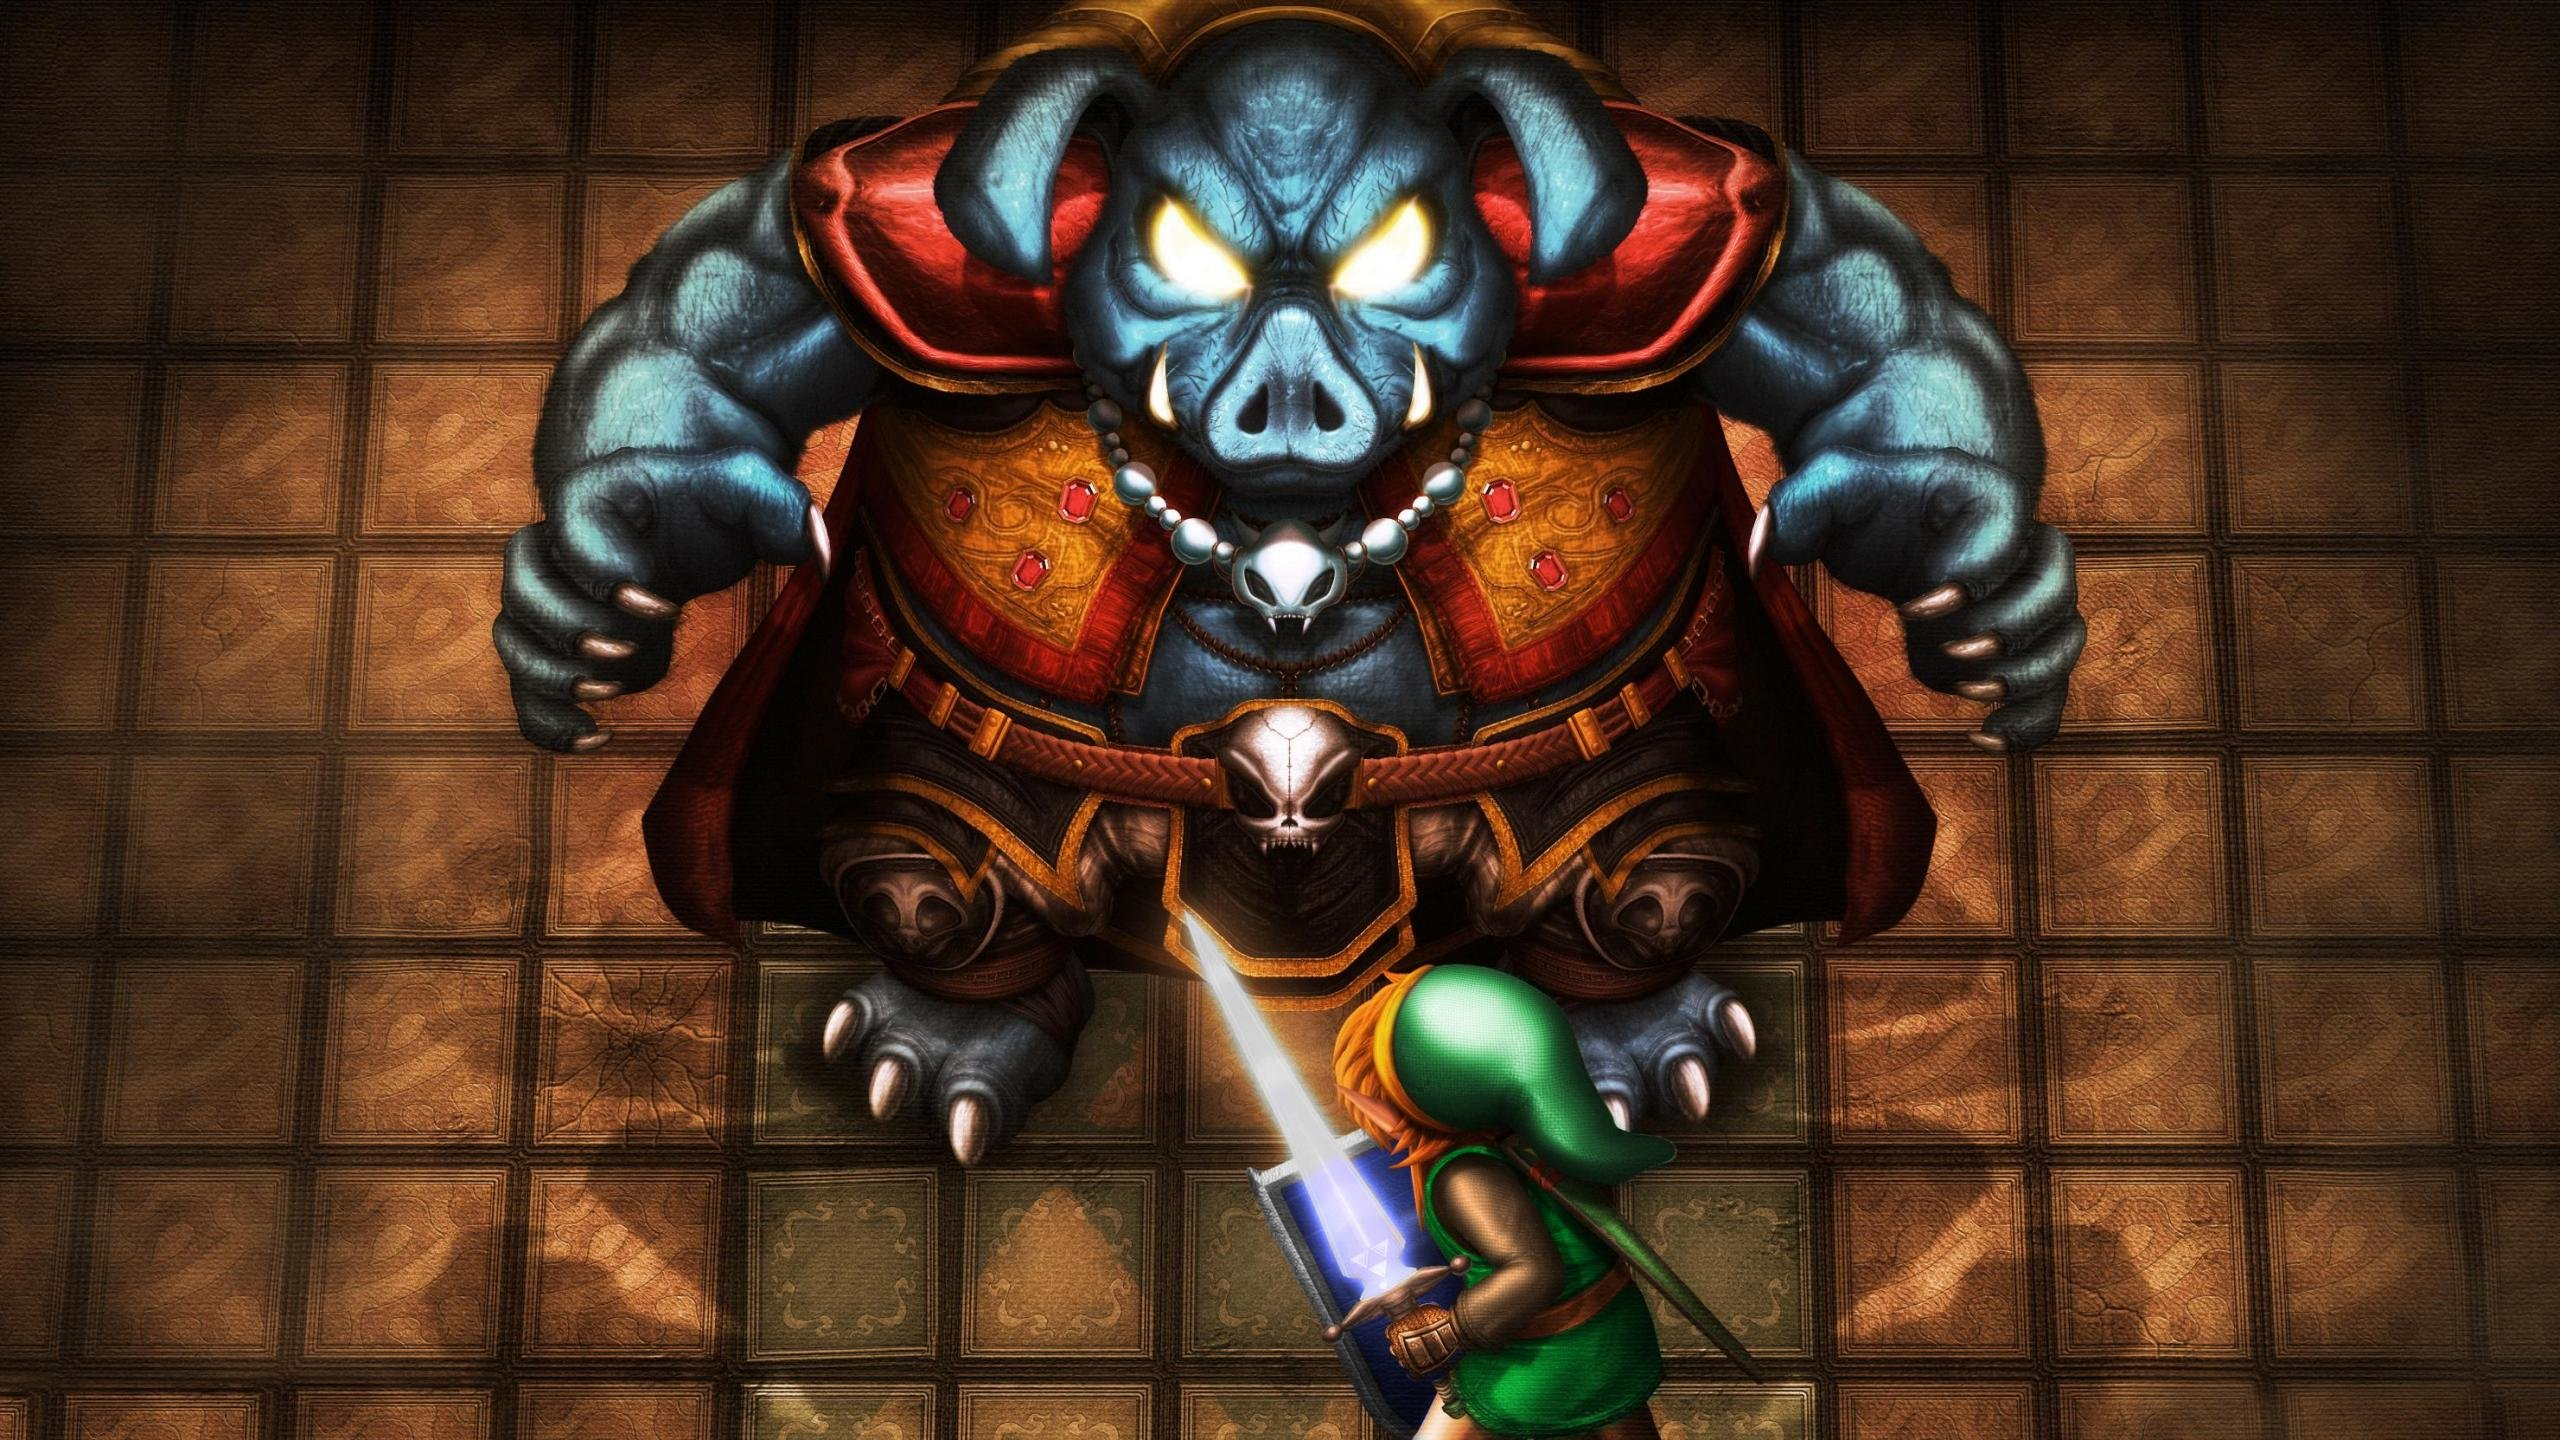 The Legend Of Zelda A Link To The Past Wallpapers Hd For Desktop